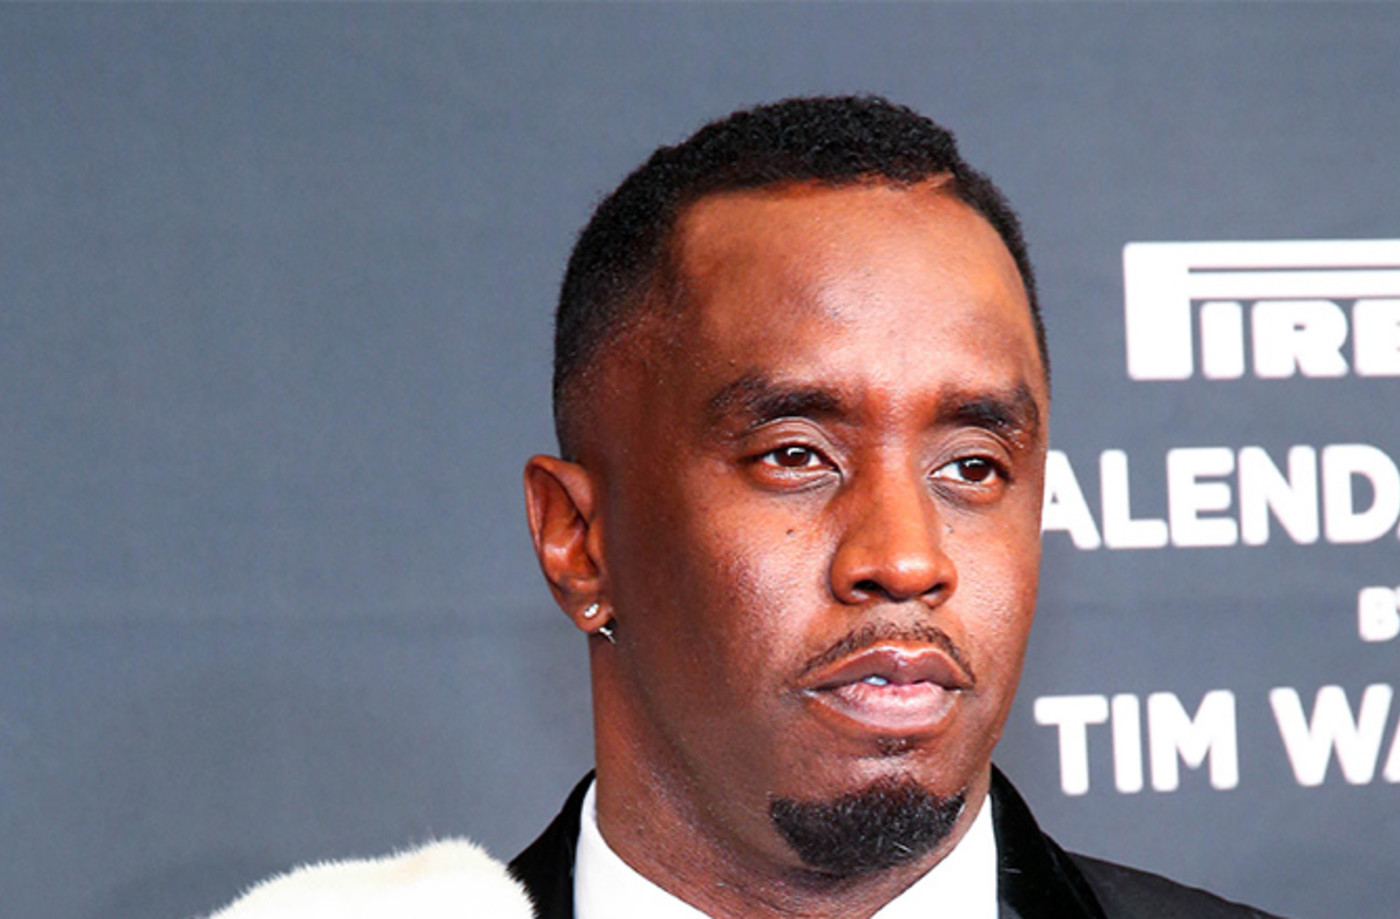 This is a photo of Puff Daddy.